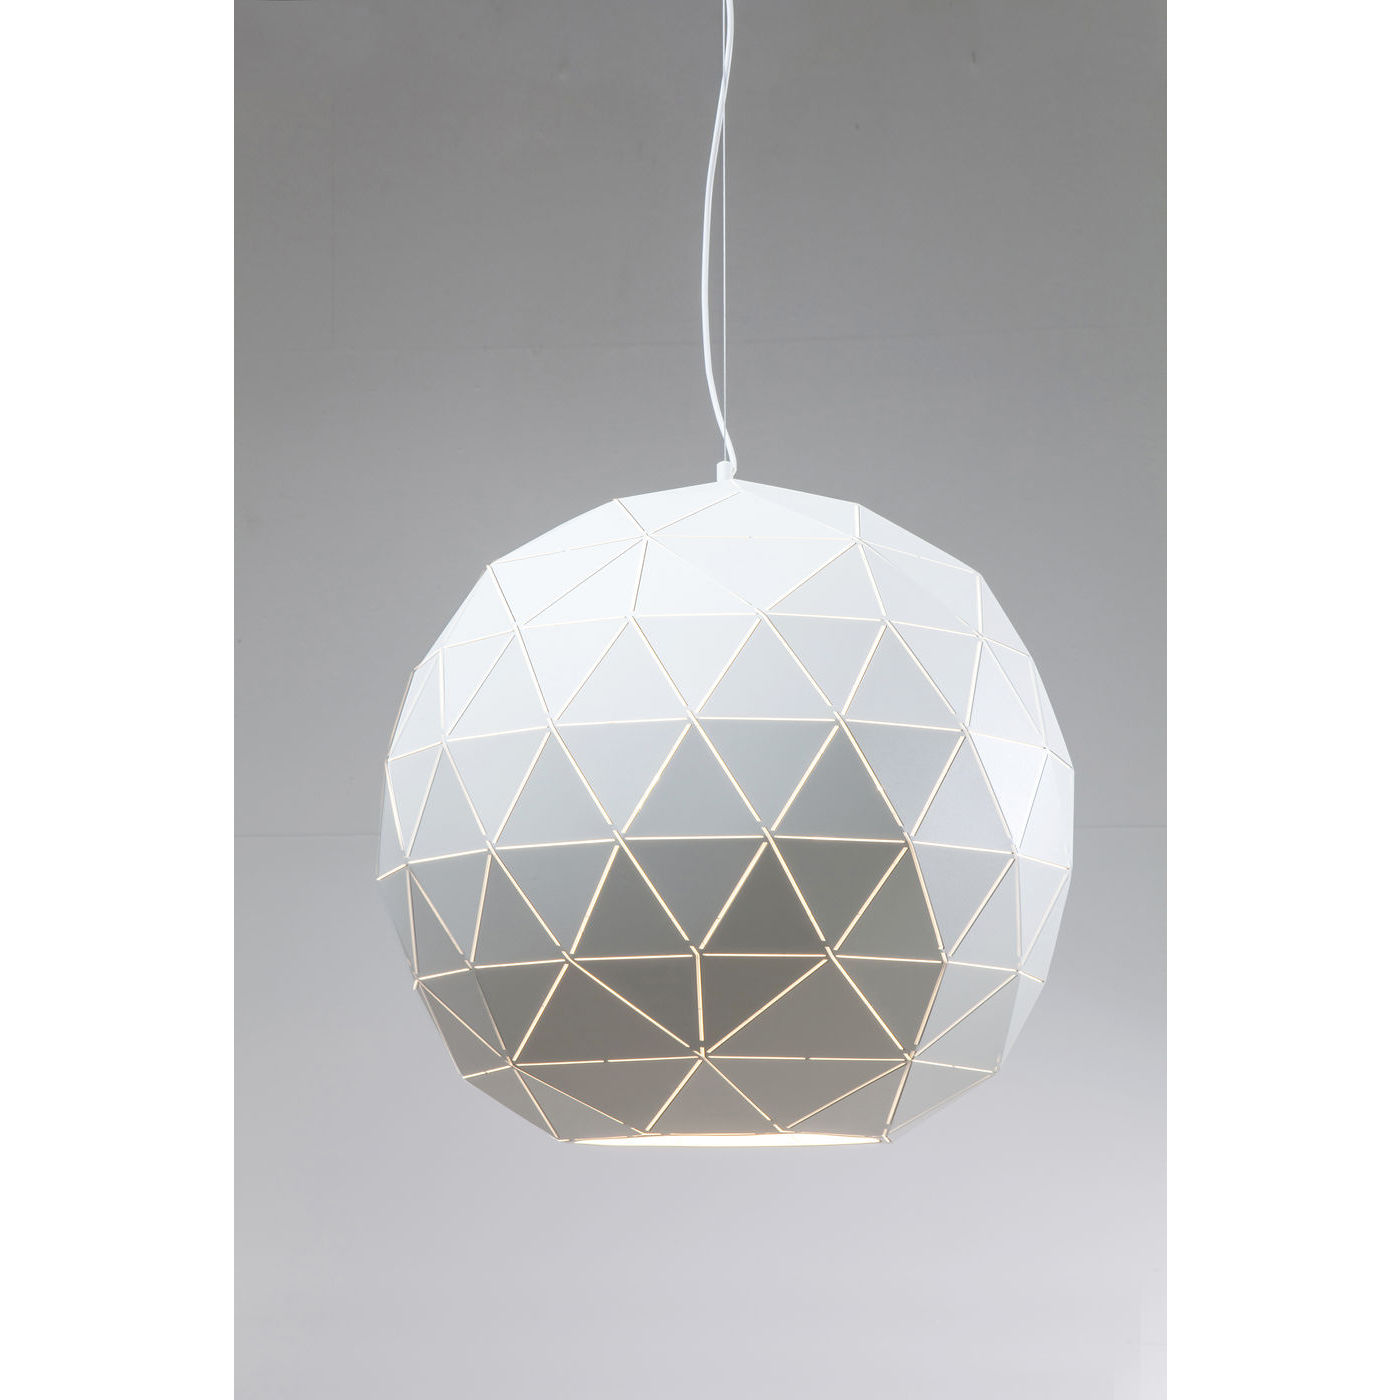 Image of   KARE DESIGN Loftslampe, Triangle White